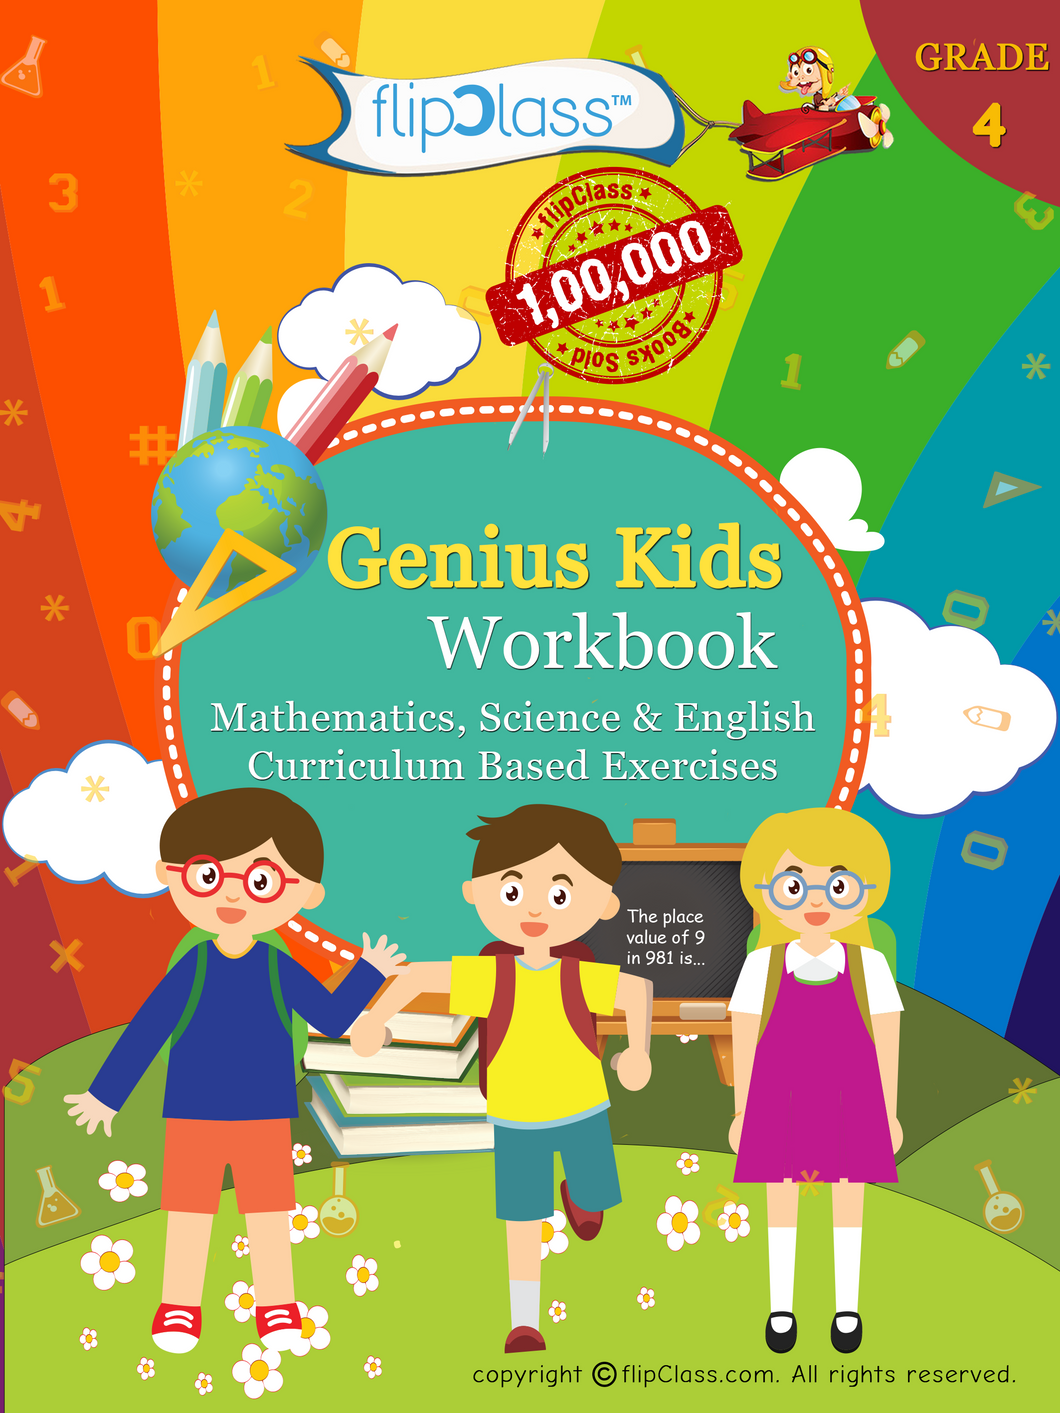 Genius Kids Worksheets for Class 4 (4th Grade)